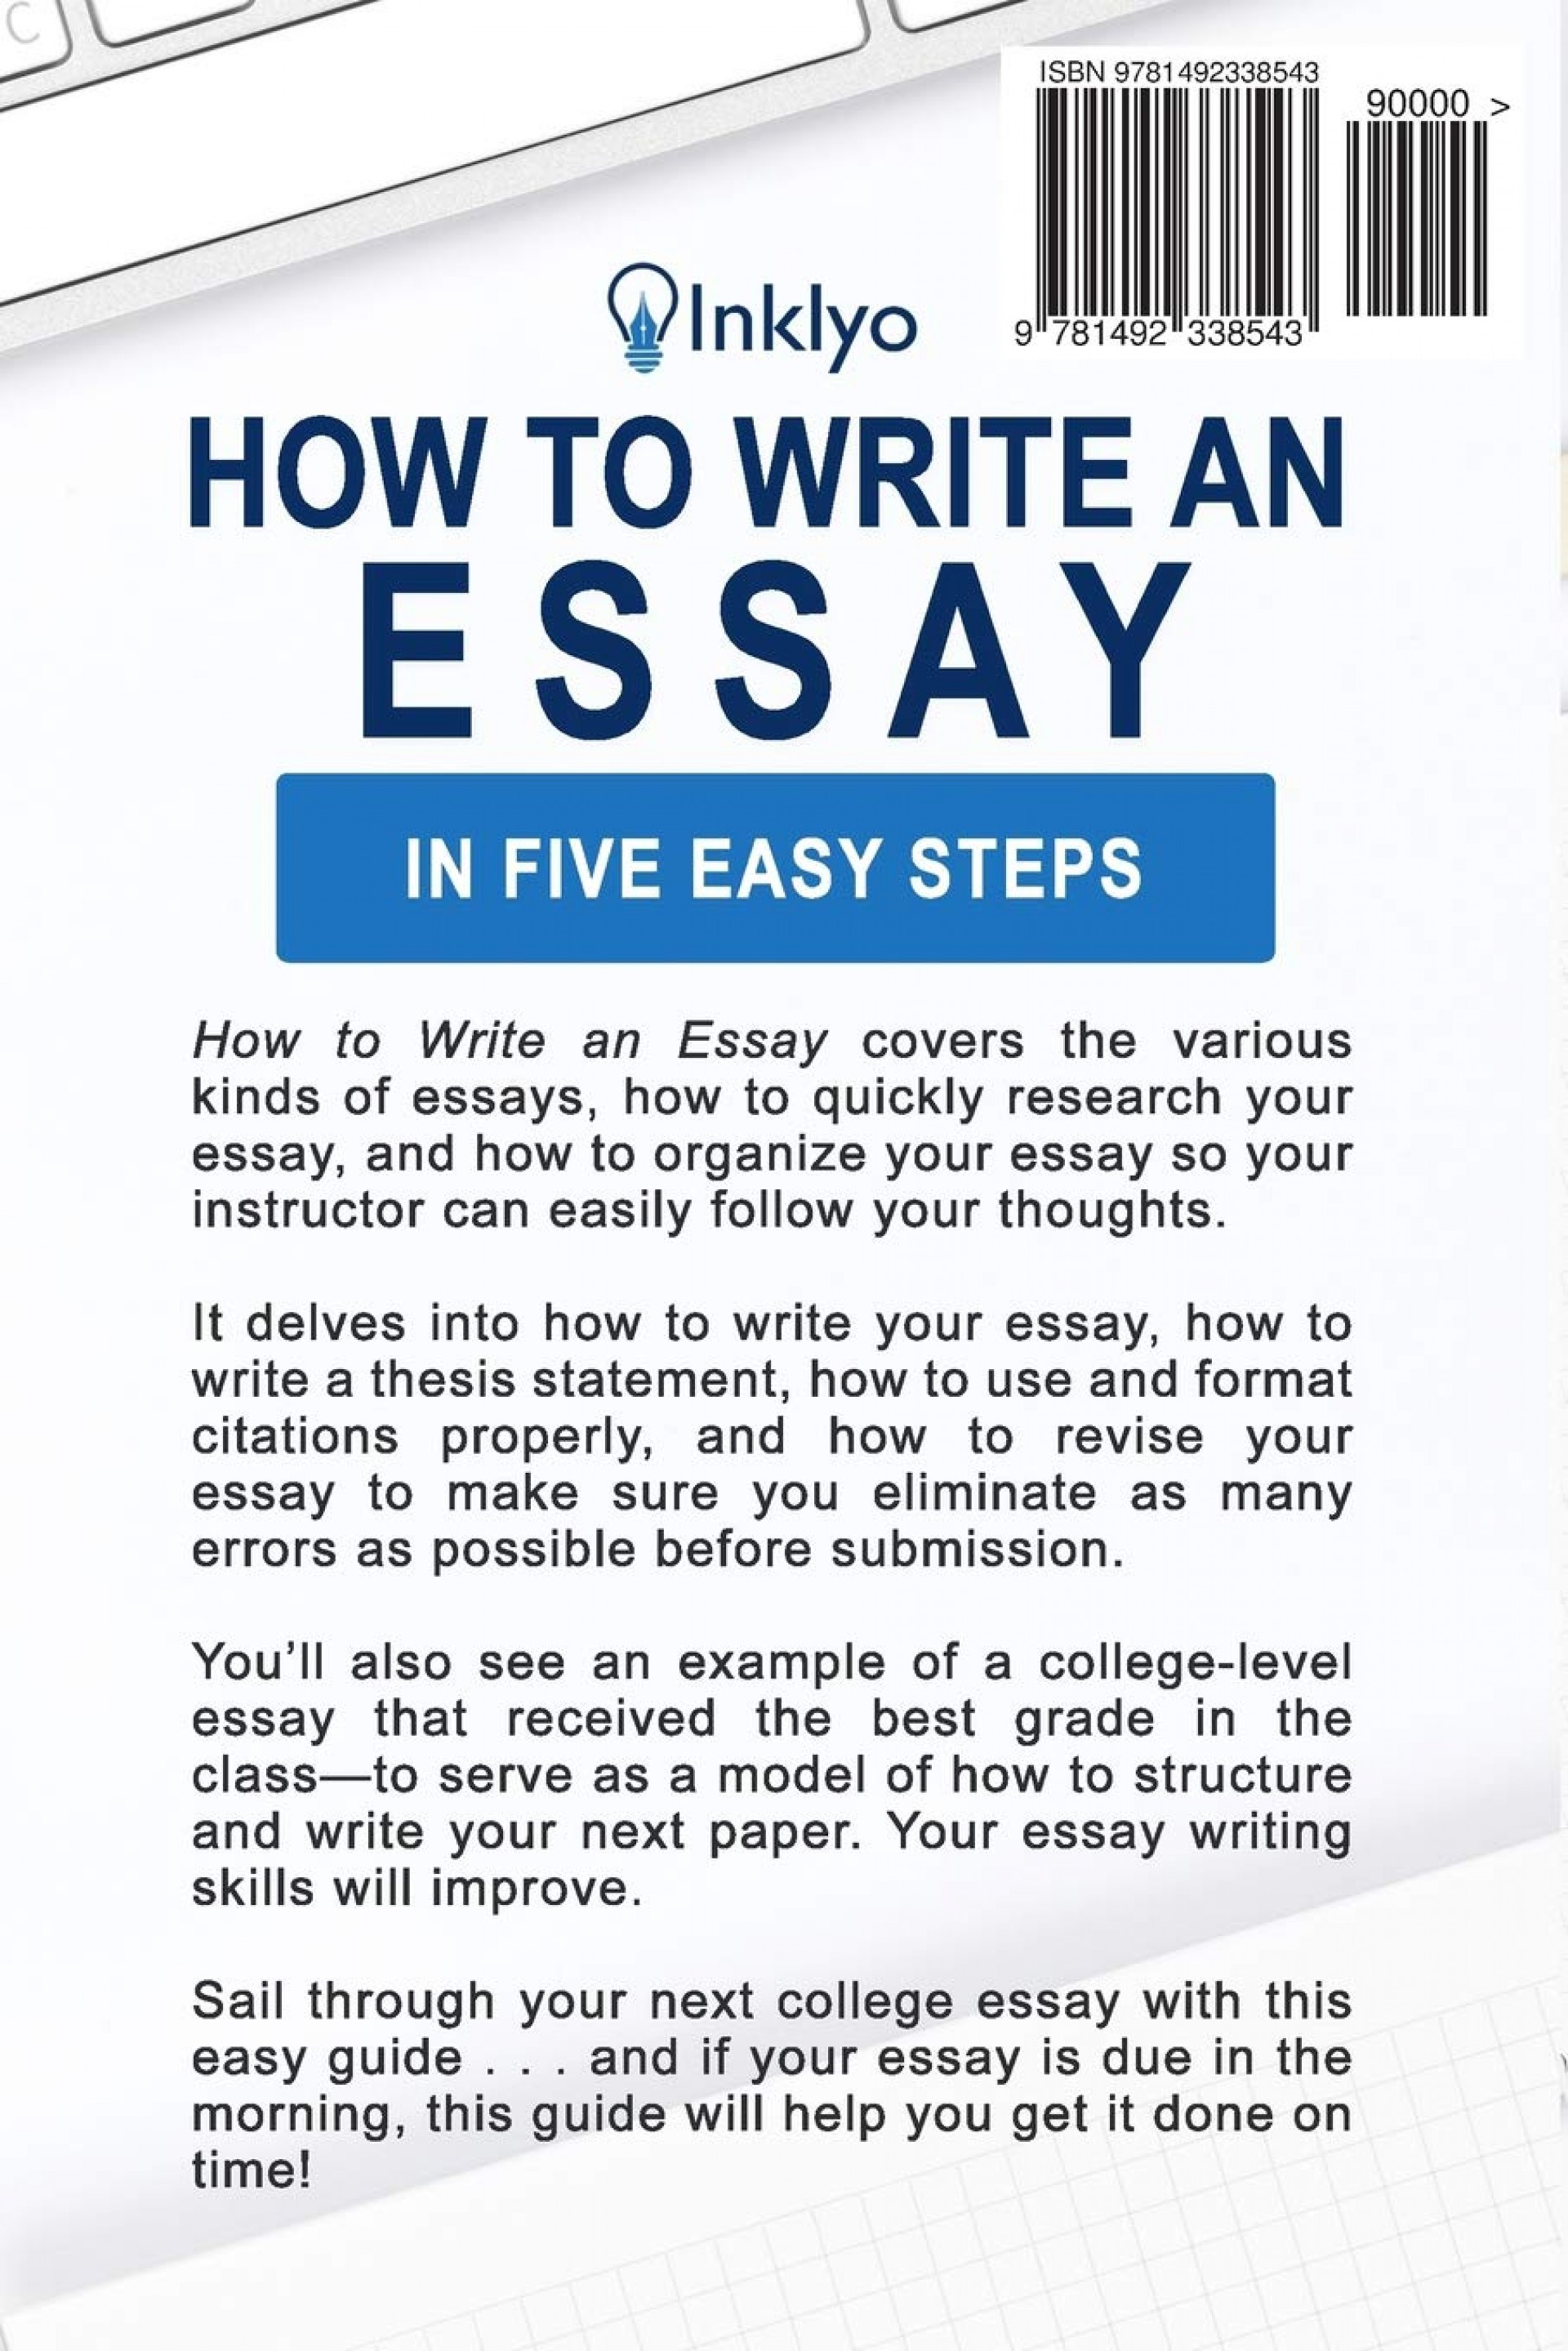 002 How To Write An Essay Example Shocking In Mla Format 2018 Introduction For College Paper Apa 1920